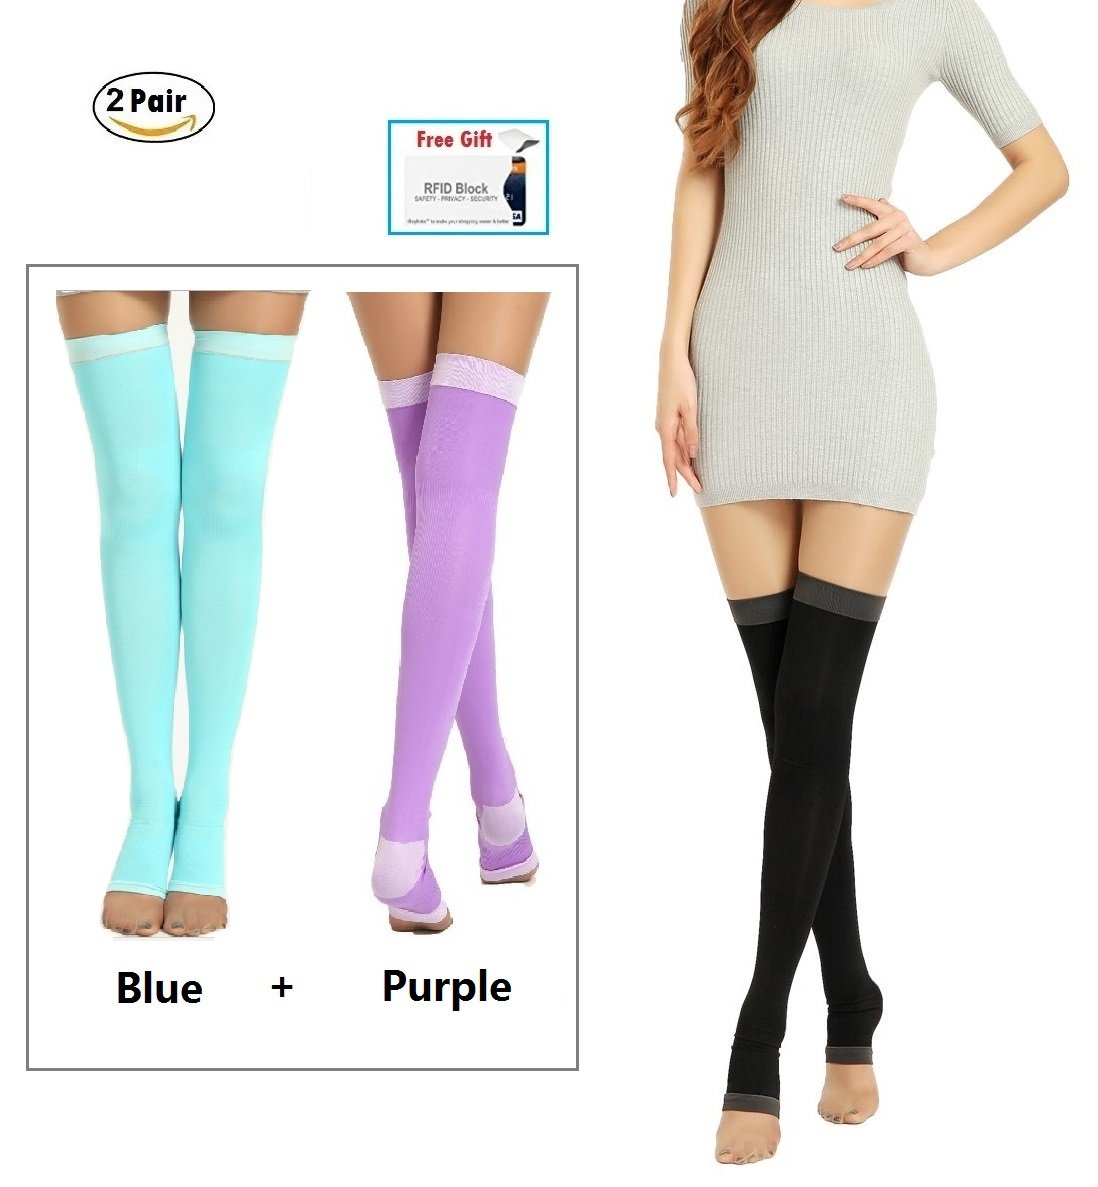 2Pair Yoga Sleep Therapeutic Thigh-high Compression Socks Toeless S/M + Small gift CNMY